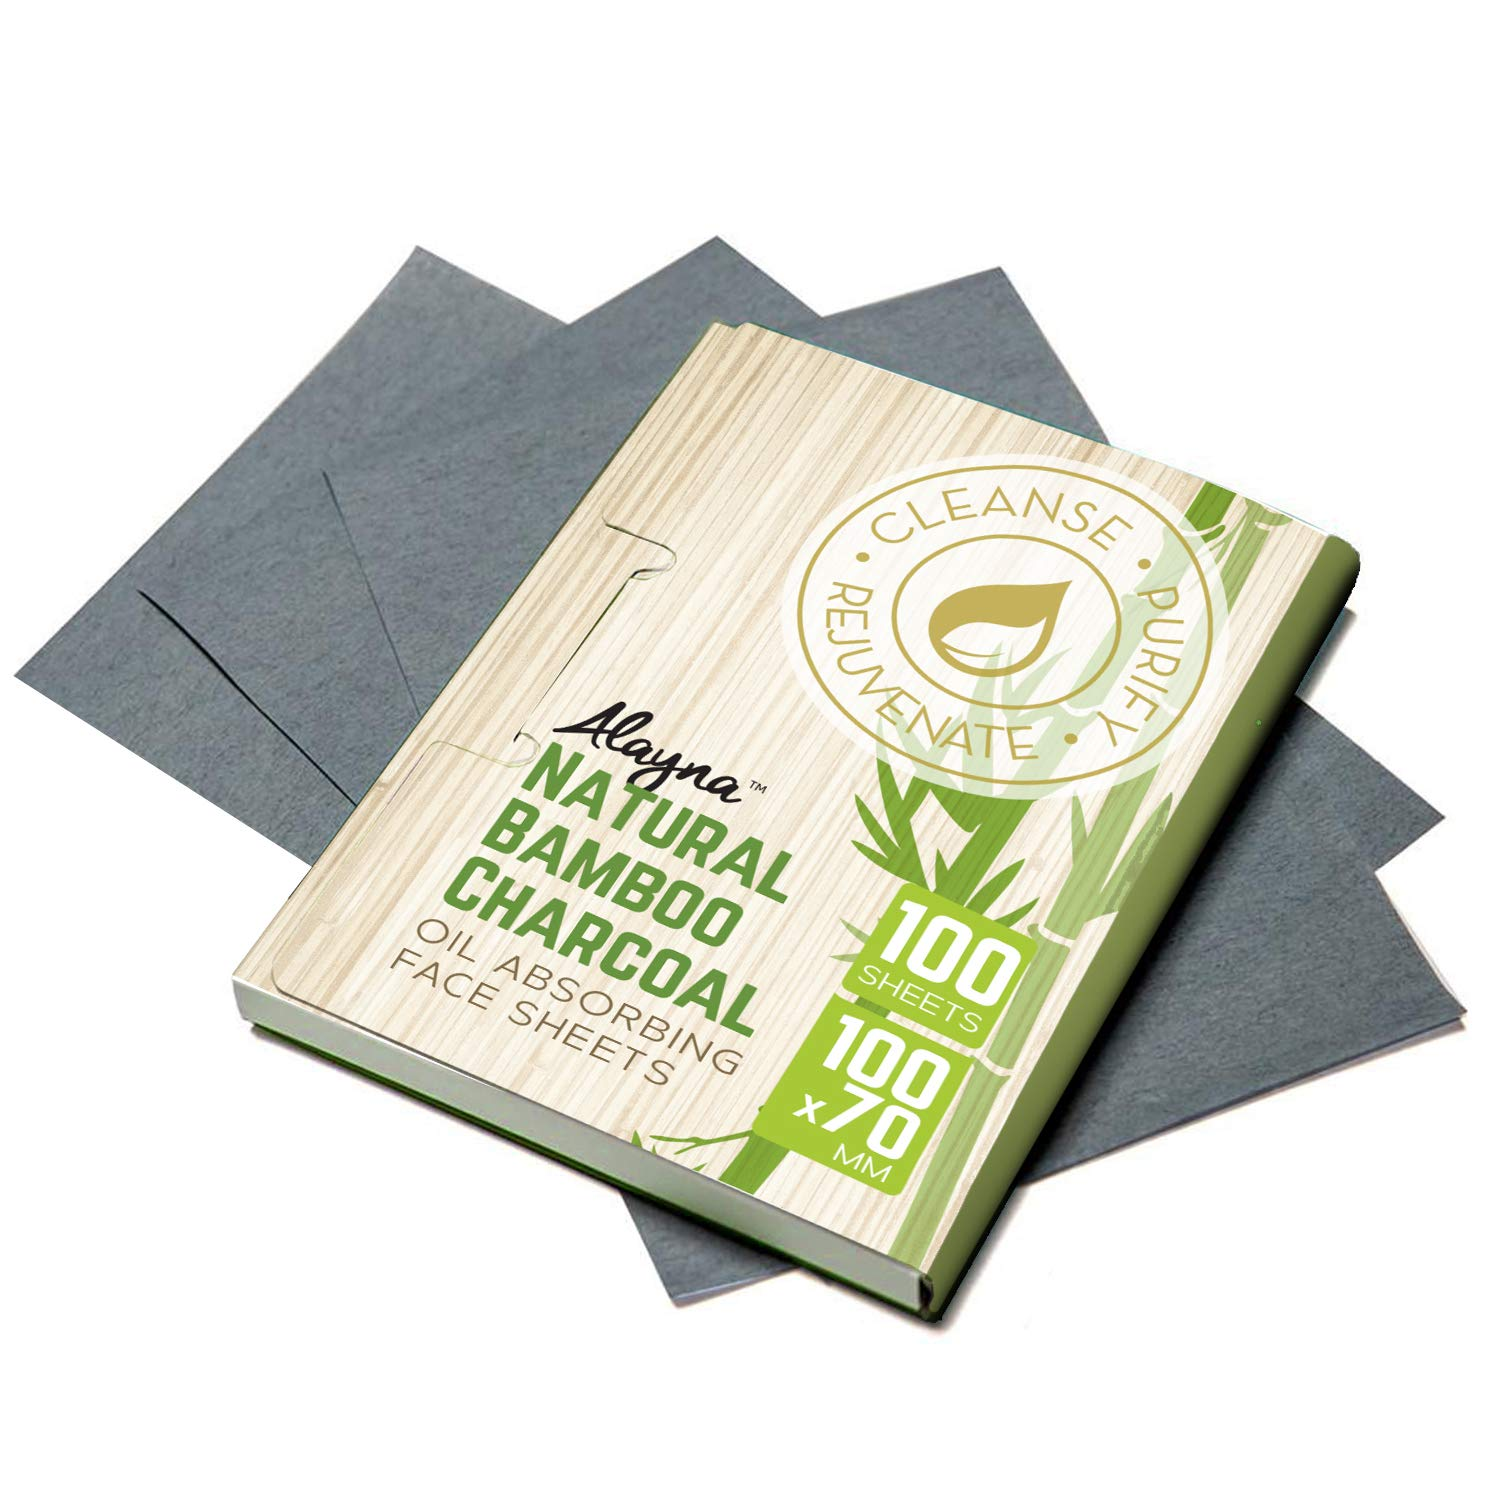 (3 PK) Oil Blotting Sheets- Natural Bamboo Charcoal Oil Absorbing Tissues- 300 Pcs Organic Blotting Paper- Beauty Blotters for the Face- Papers Remove Excess Shine- For Facial Make Up & Skin Care by Alayna TM